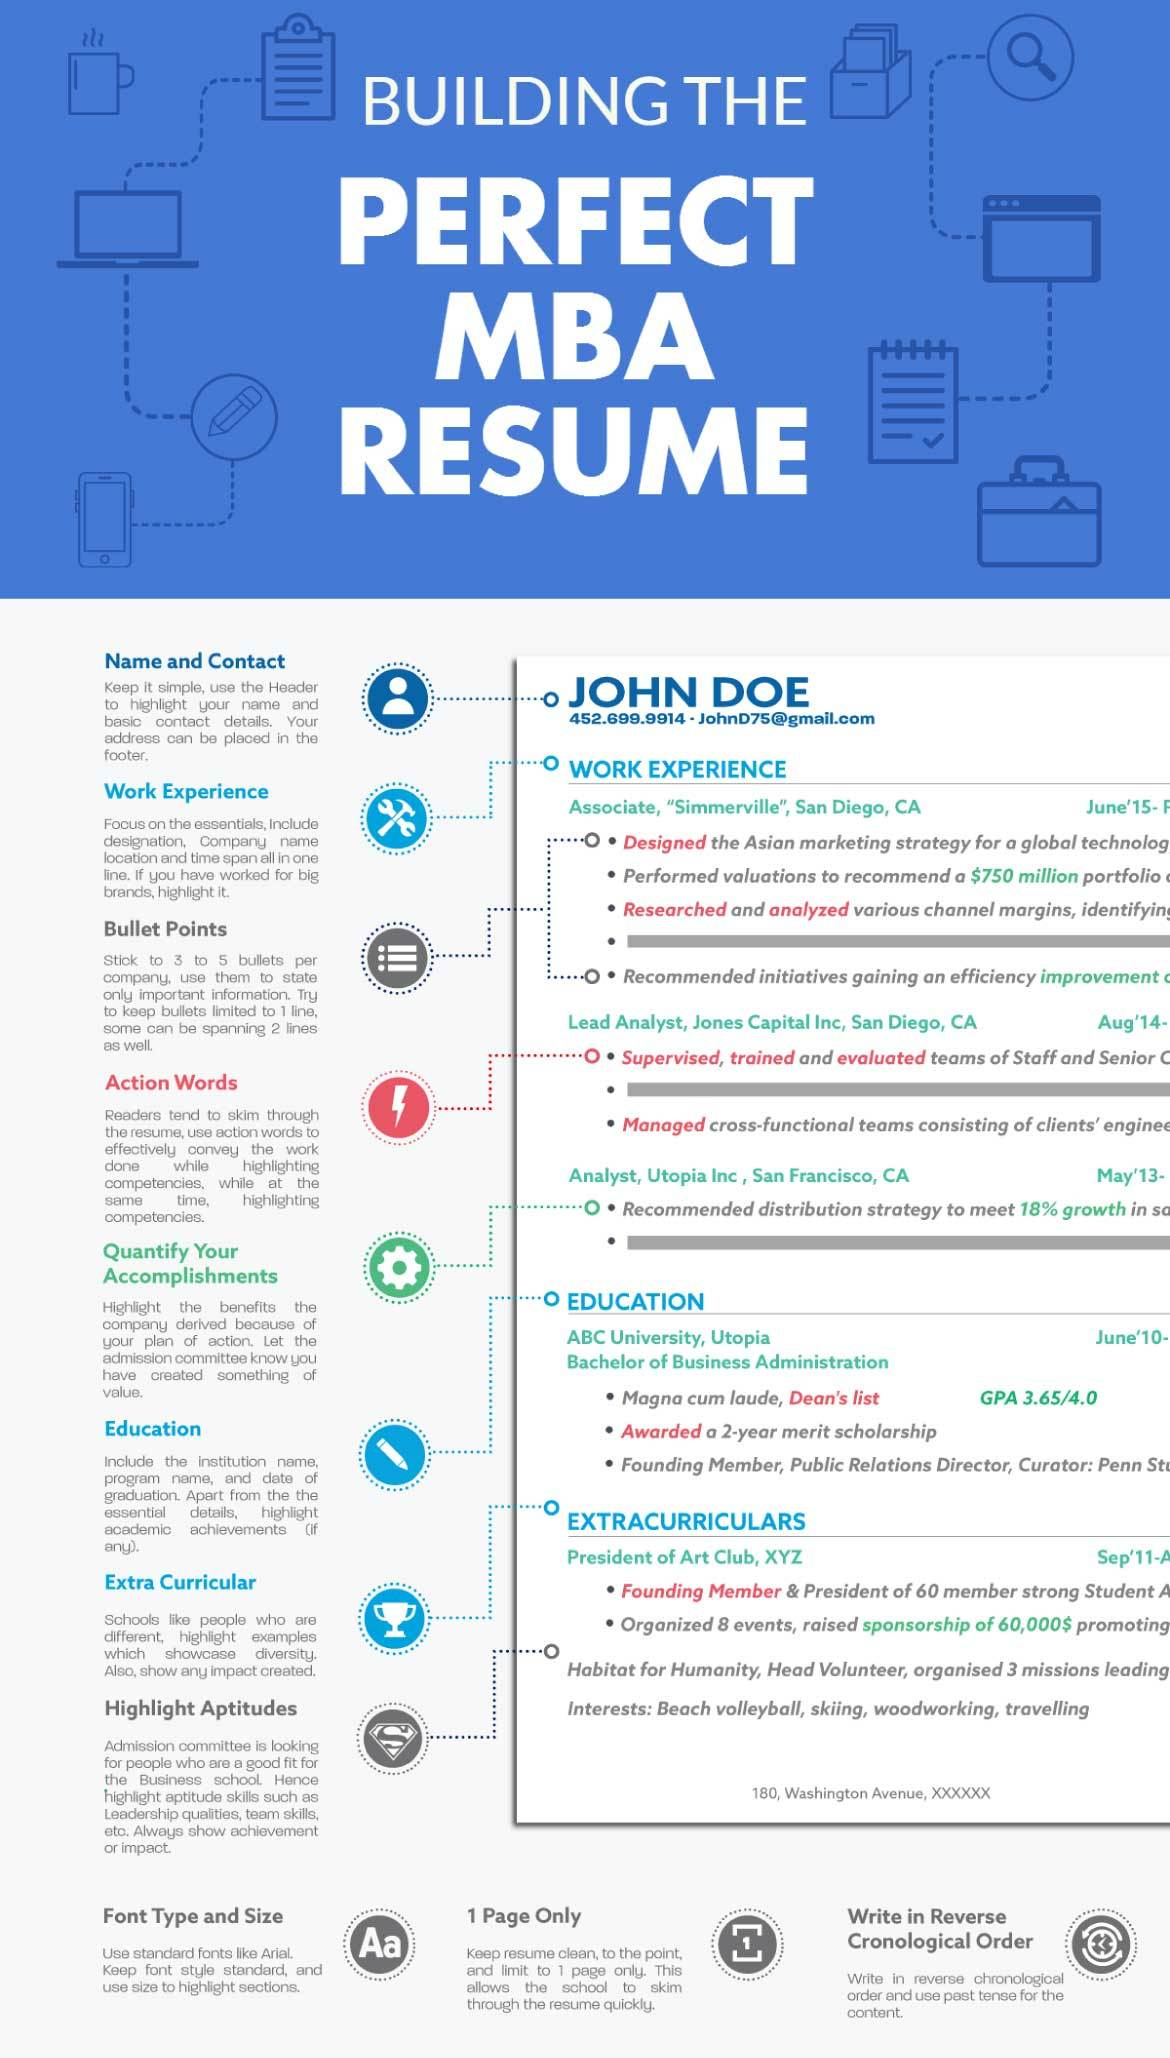 Military Resume Writers Military Transition Resumes 10 Steps Towards Creating The Perfect Mba Resume